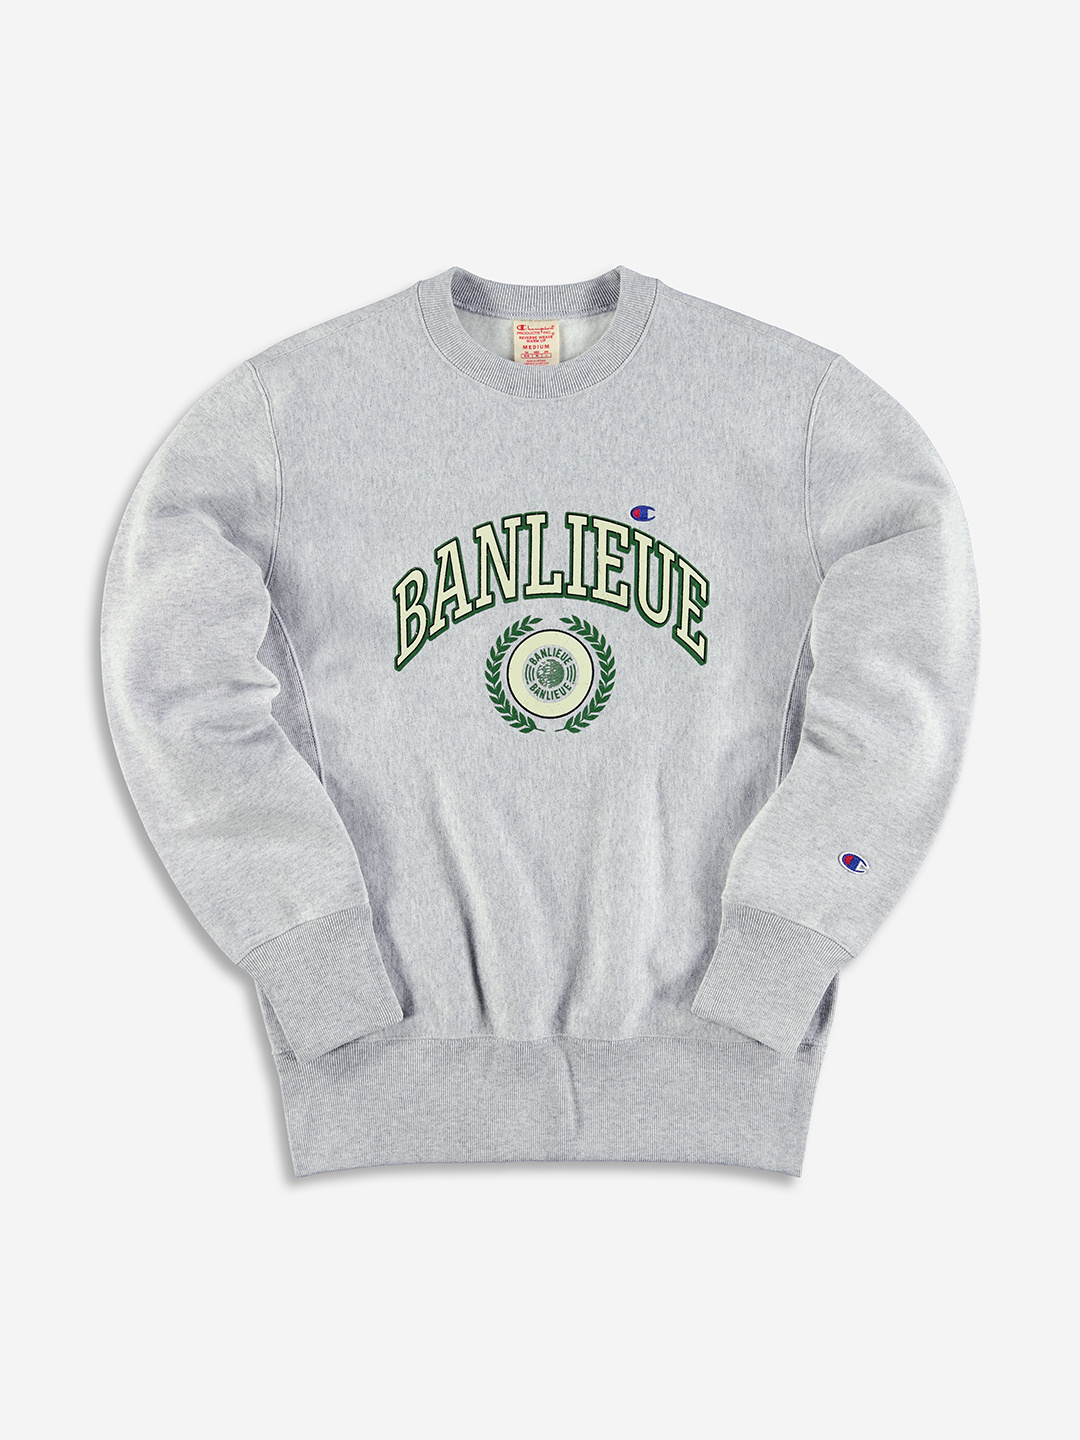 BANLIEUE X CHAMPION SWEATER GREY